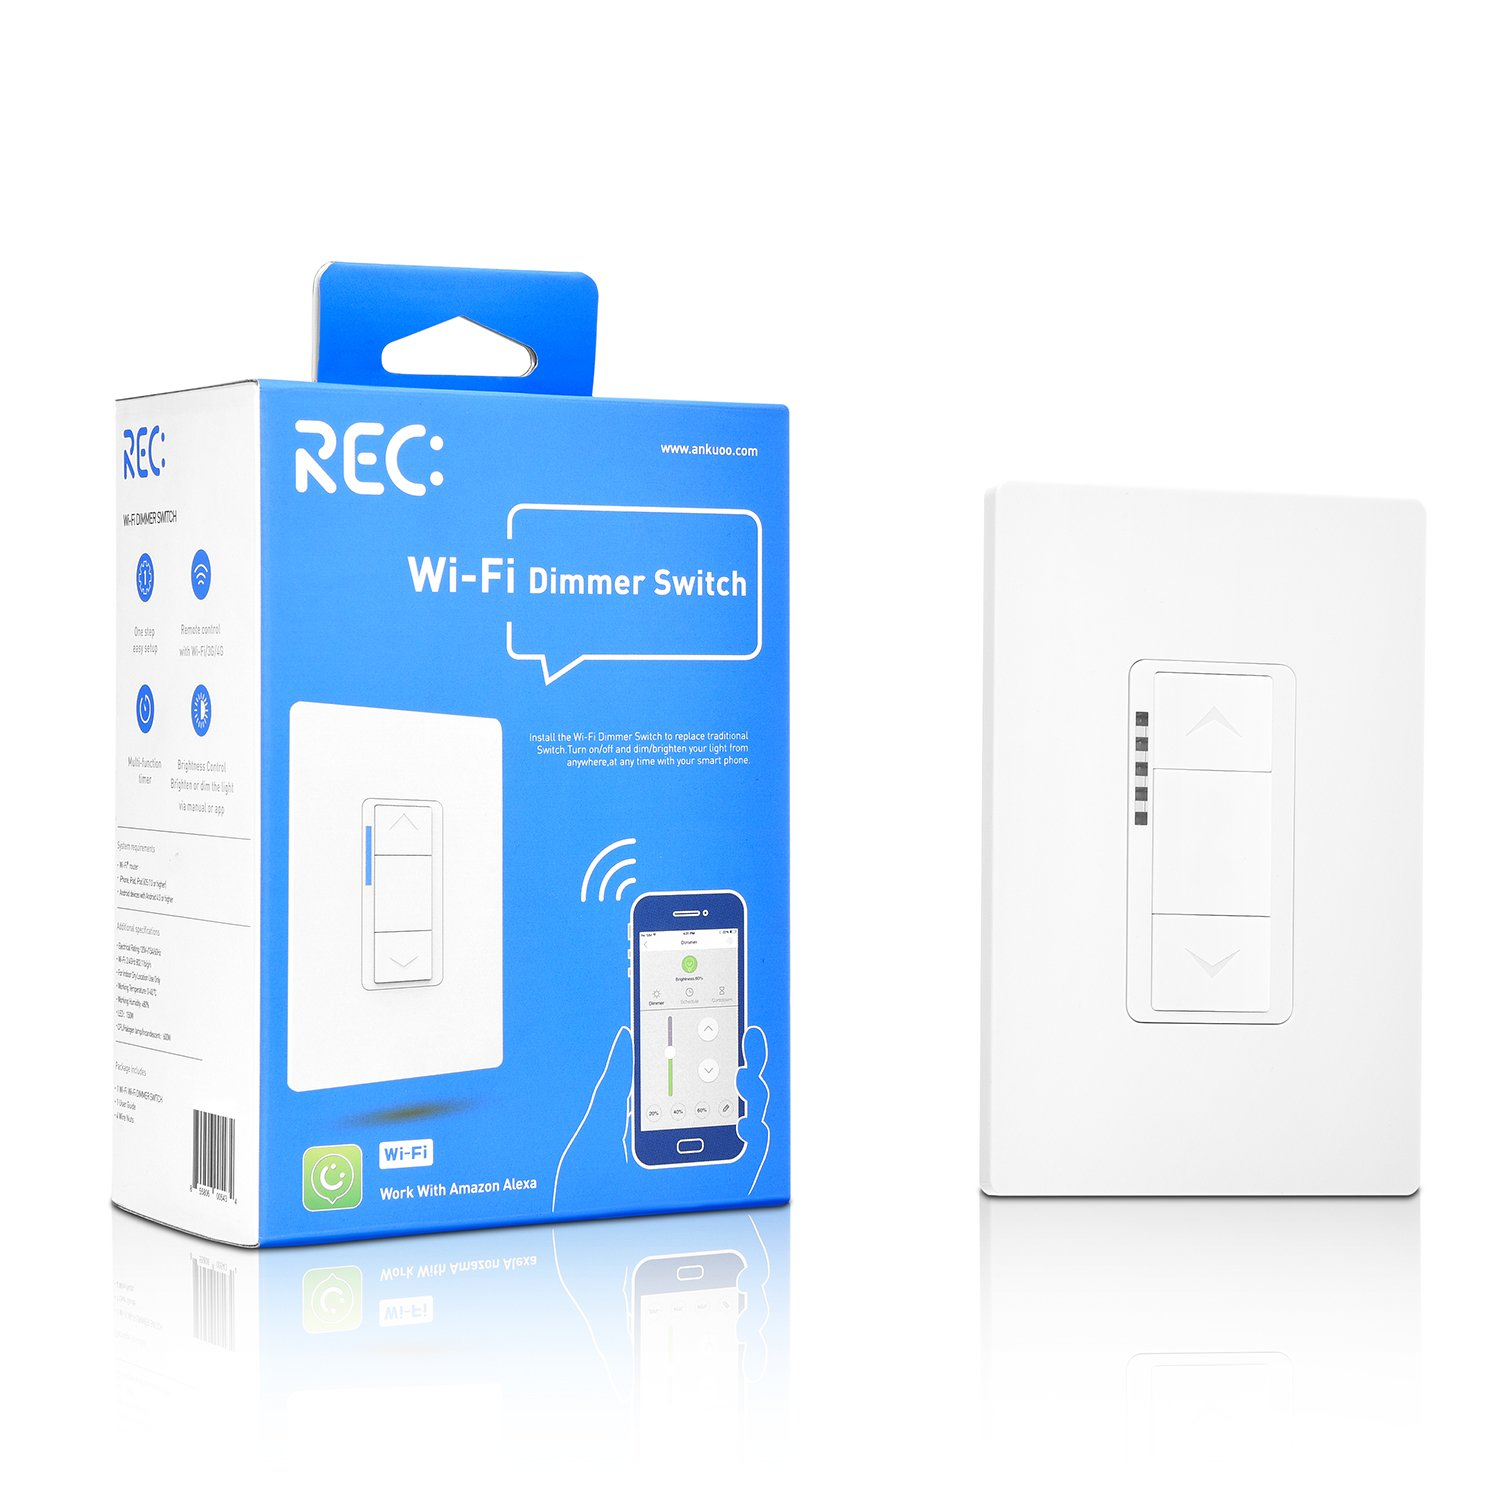 Ankuoo Rec Wi Fi Dimmer Smart Light Switch Works With Alexa Not Wiring A Off Another Plug Play Limited Diy Required No Hub Neutral Wire Single Pole